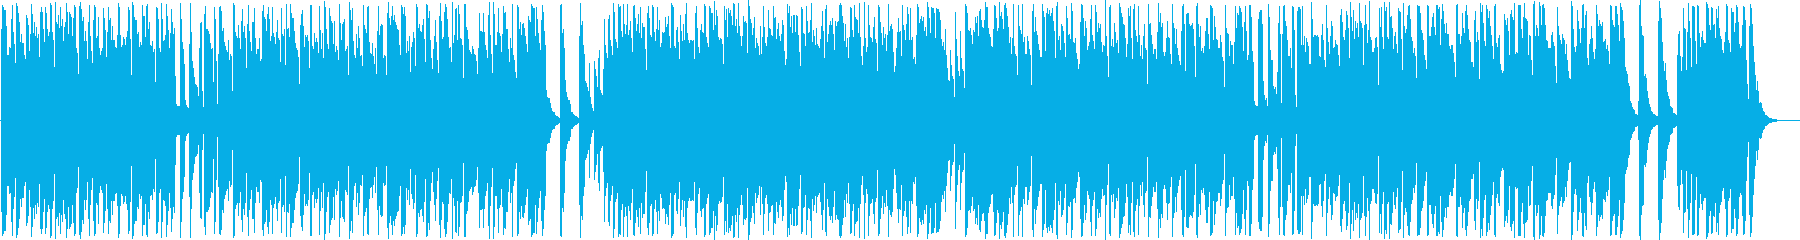 Bright information music's reproduced waveform